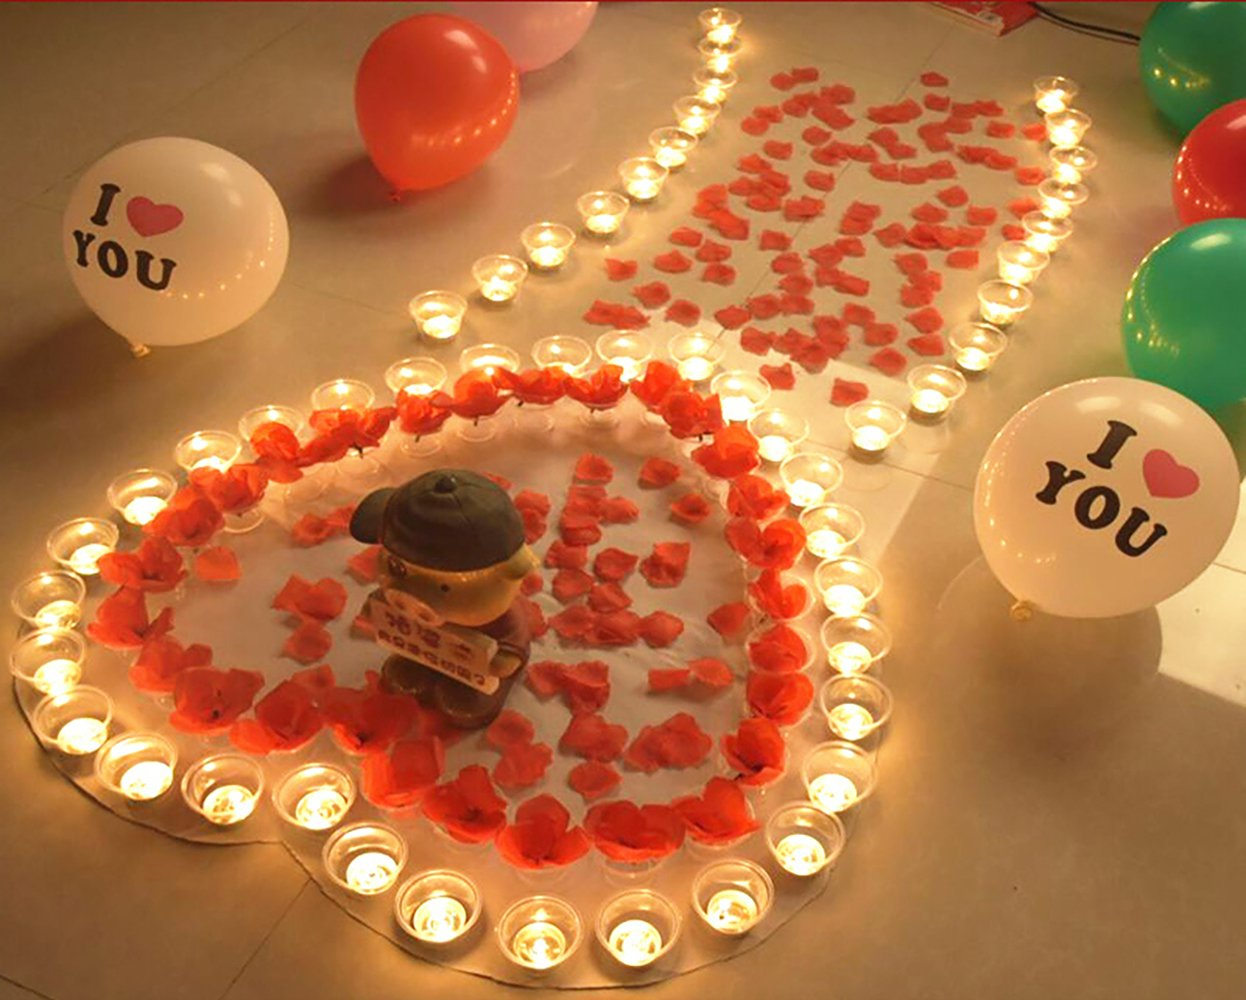 Valentine's Day Romantic Confession Decoration Pack, Tealight Candles & Floating Silk Rose and Petals for Home Decorations Wedding Birthday Party Celebrations